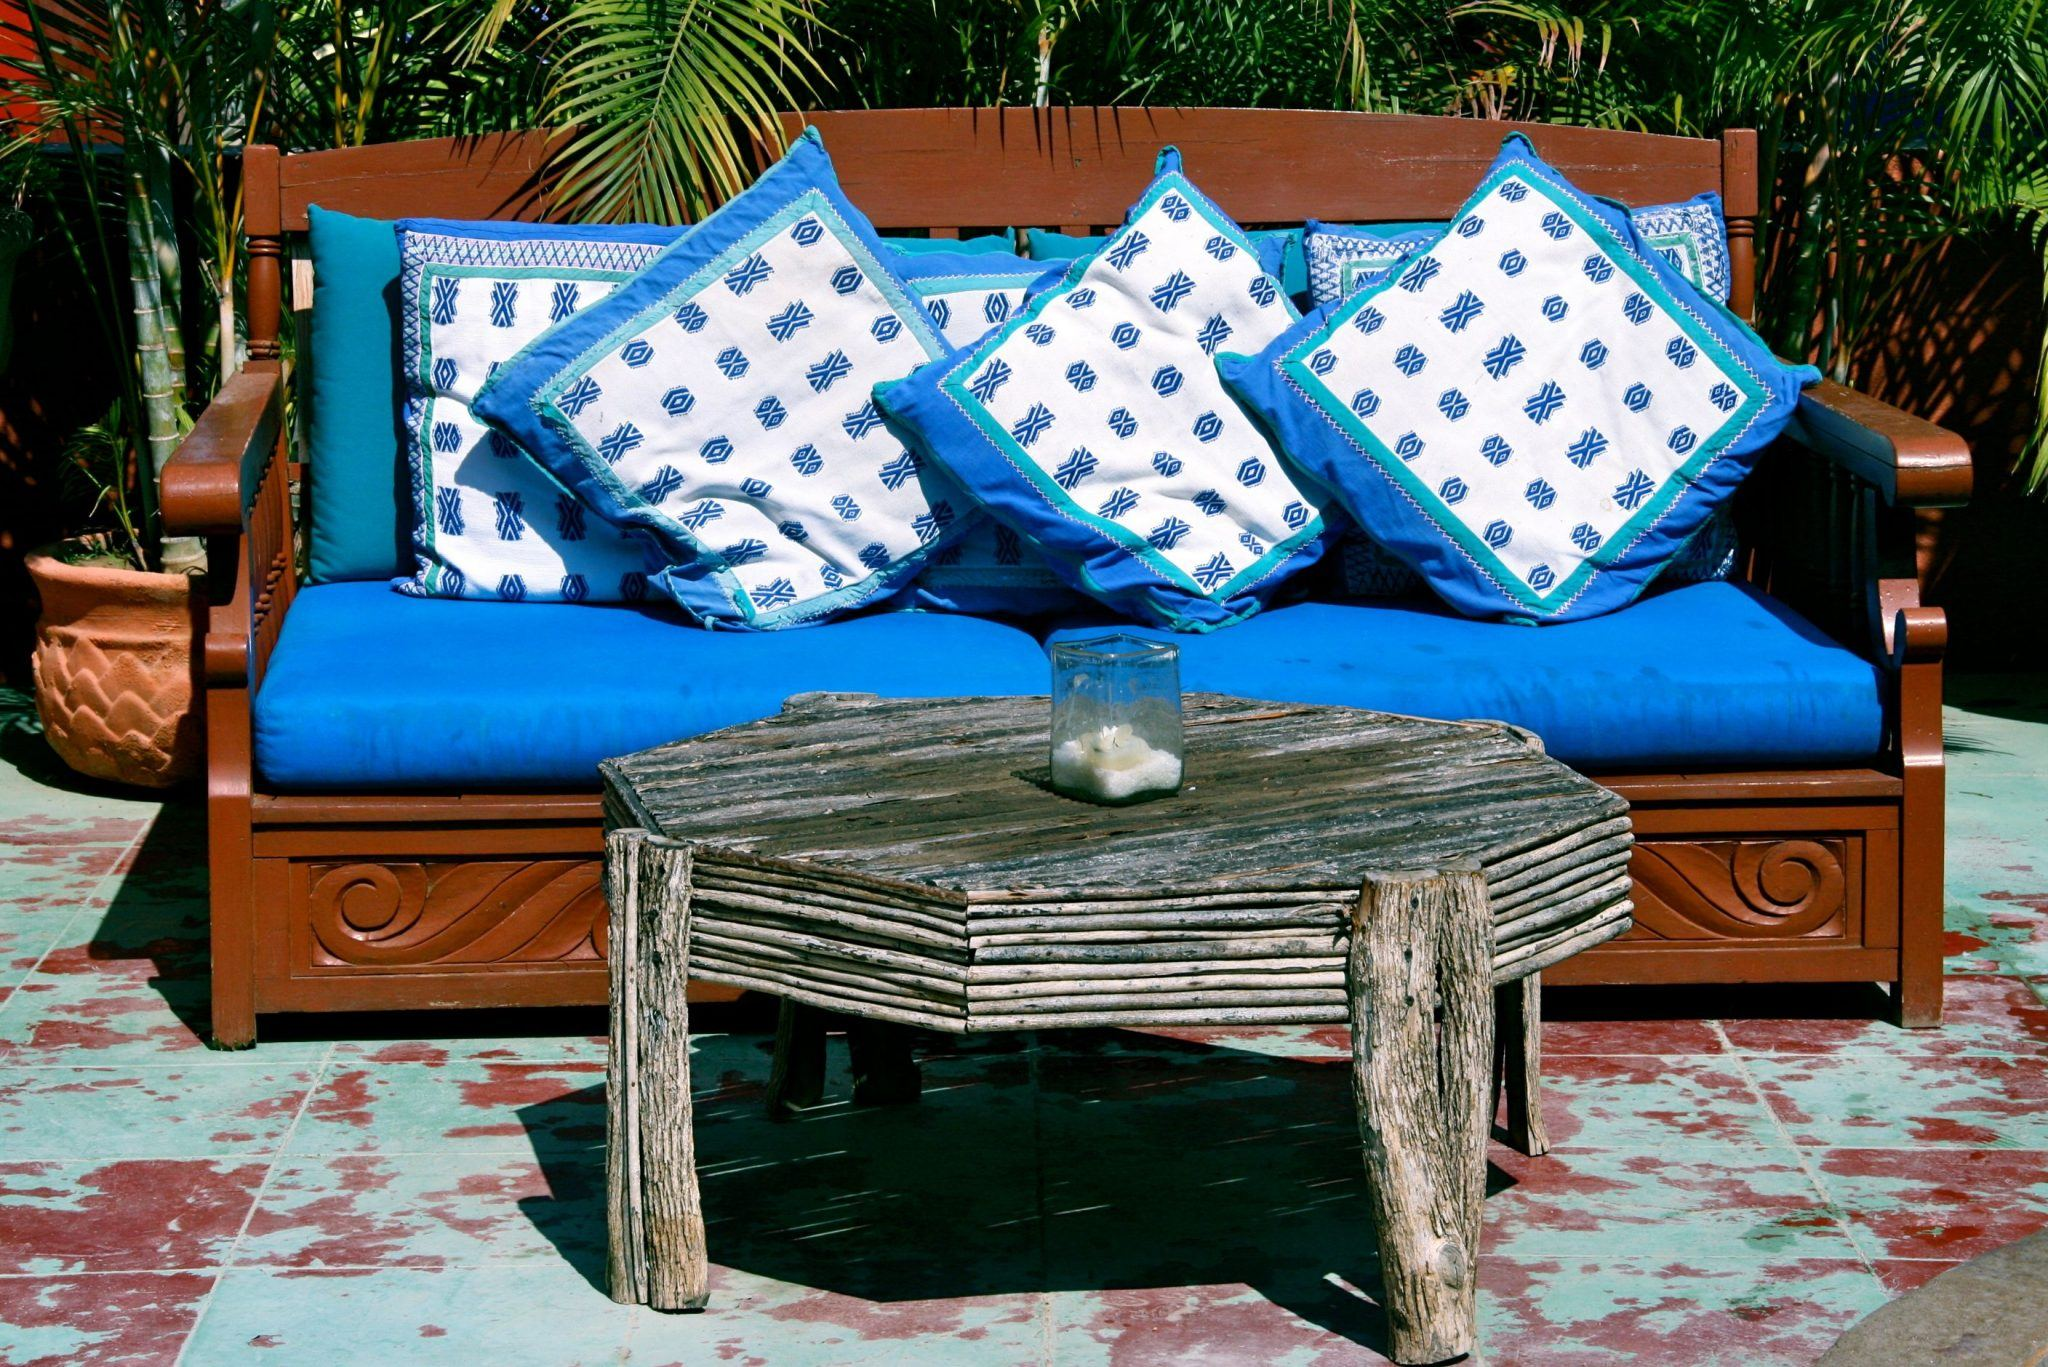 Mexican style outdoor living, poolside, yard, relaxing